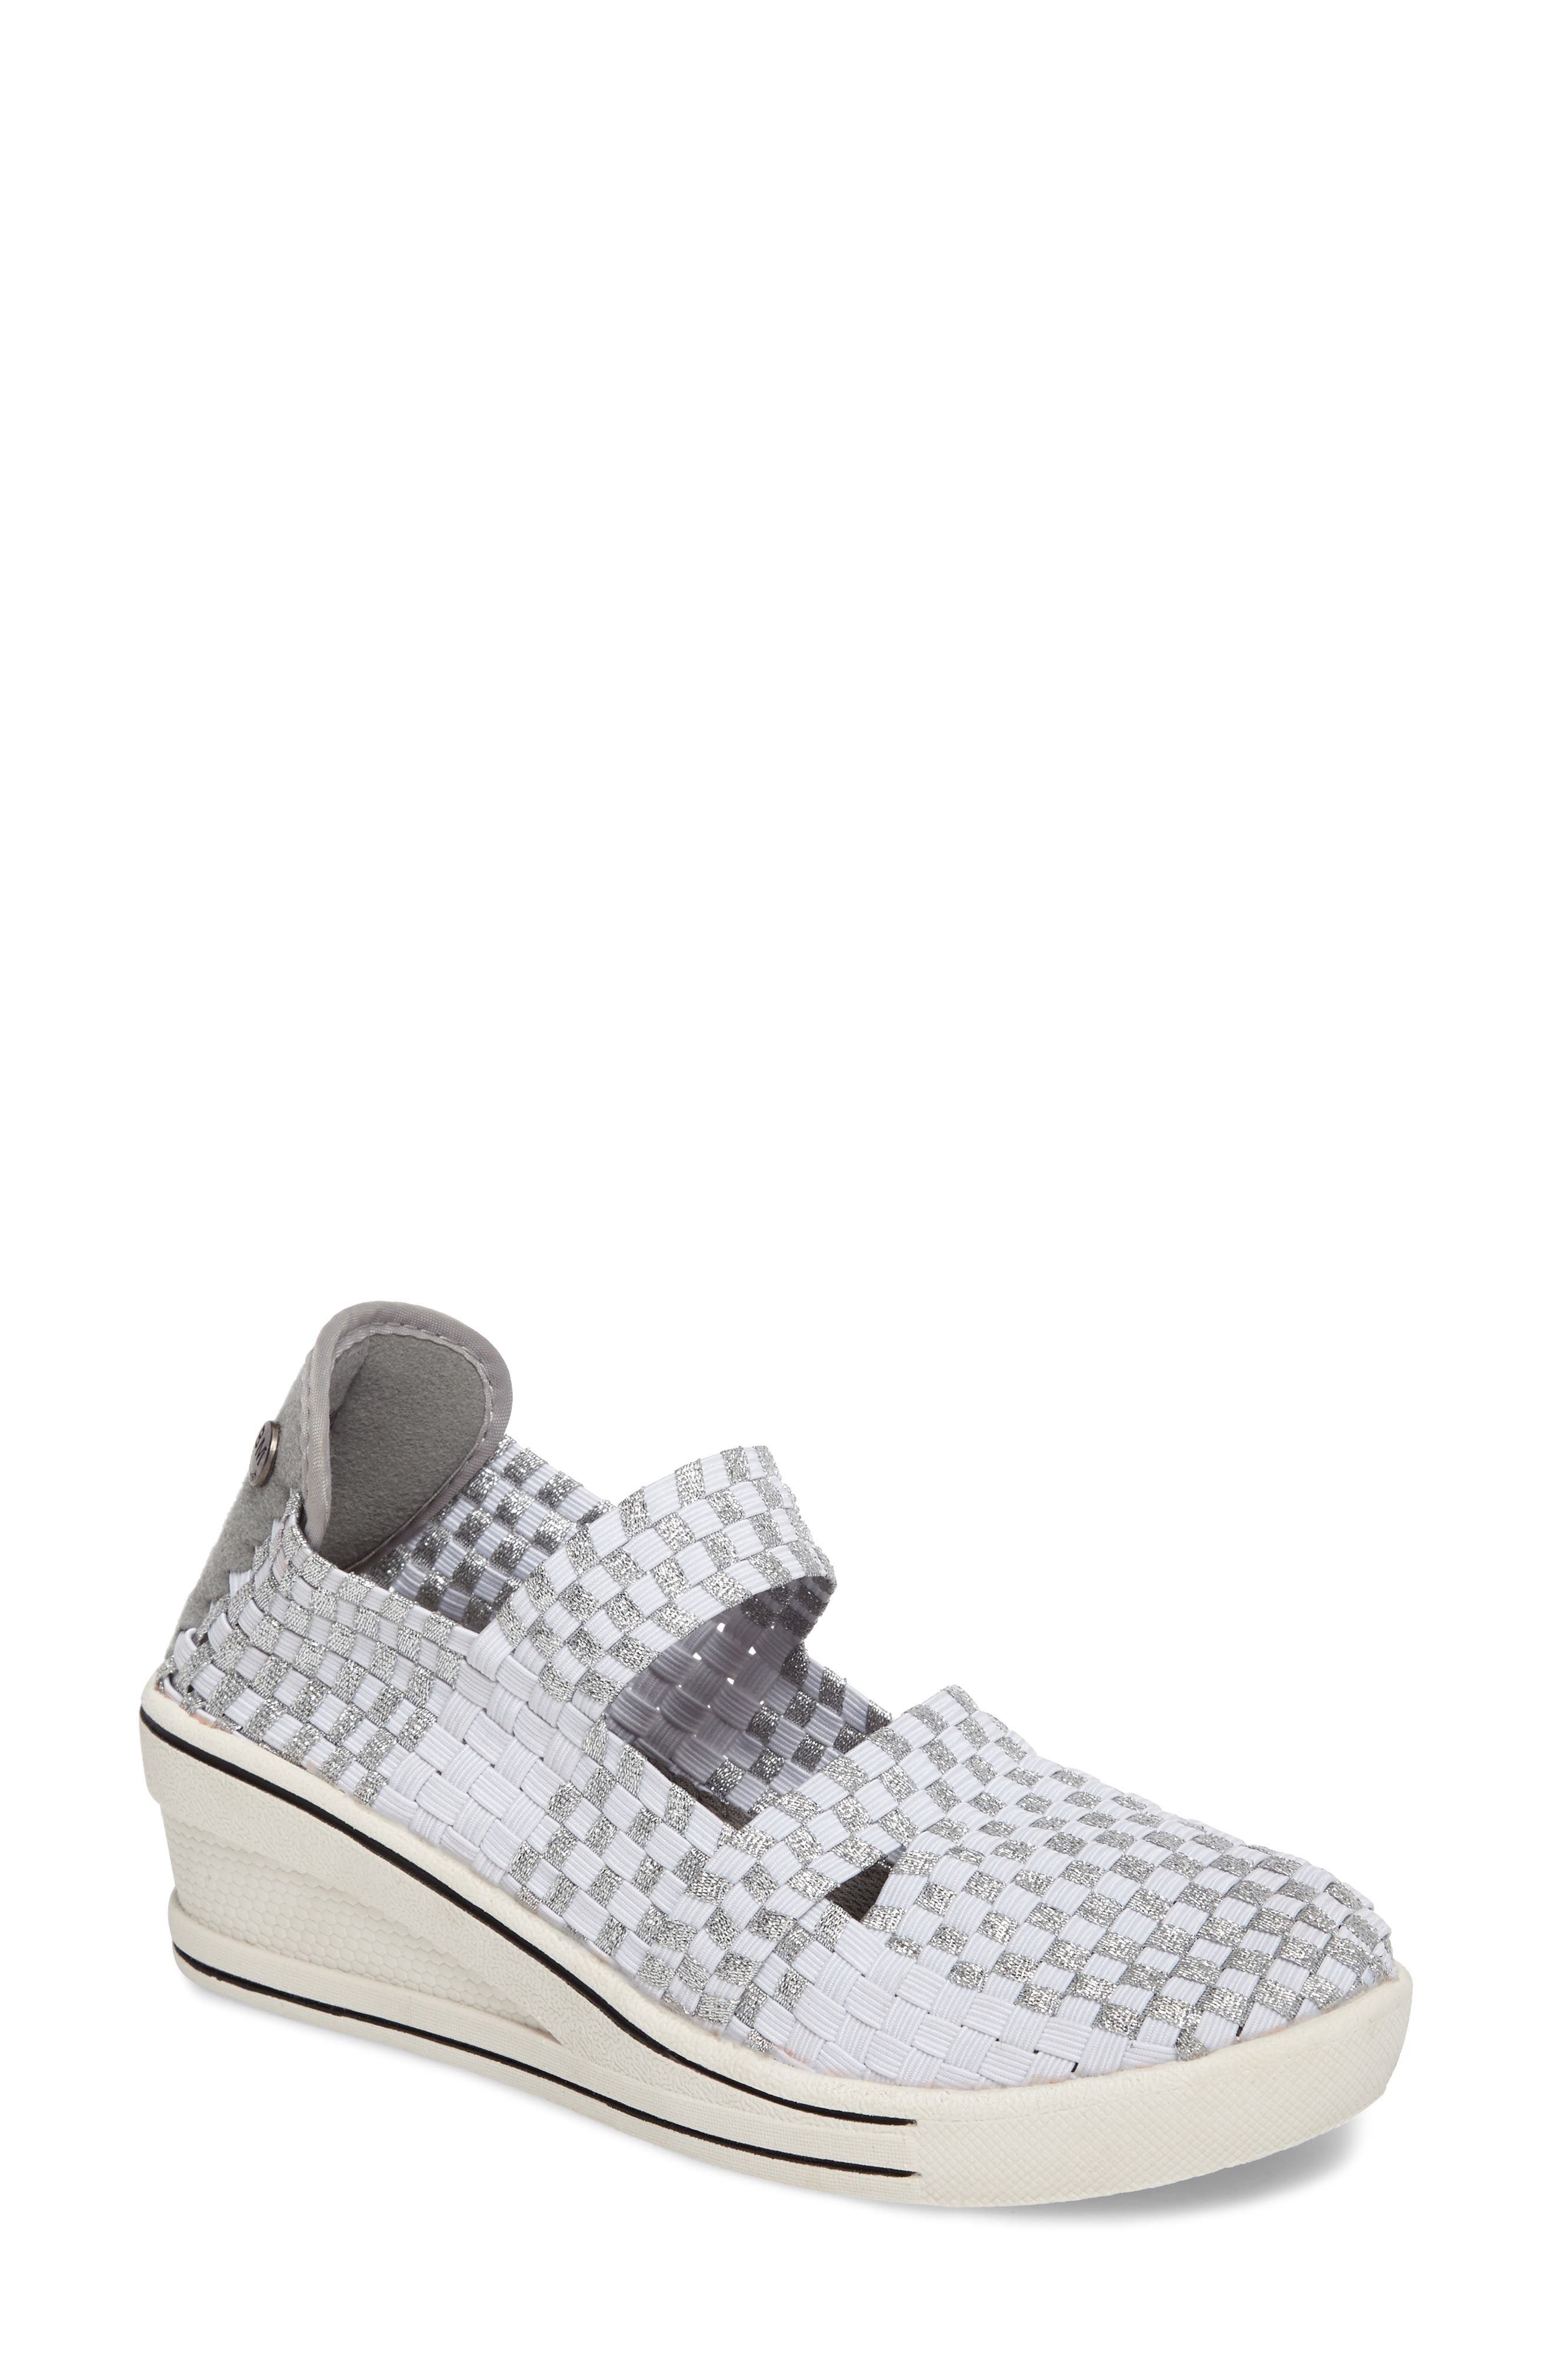 Frontier Woven Mary Jane Wedge,                         Main,                         color, Metallic White/ Silver Fabric